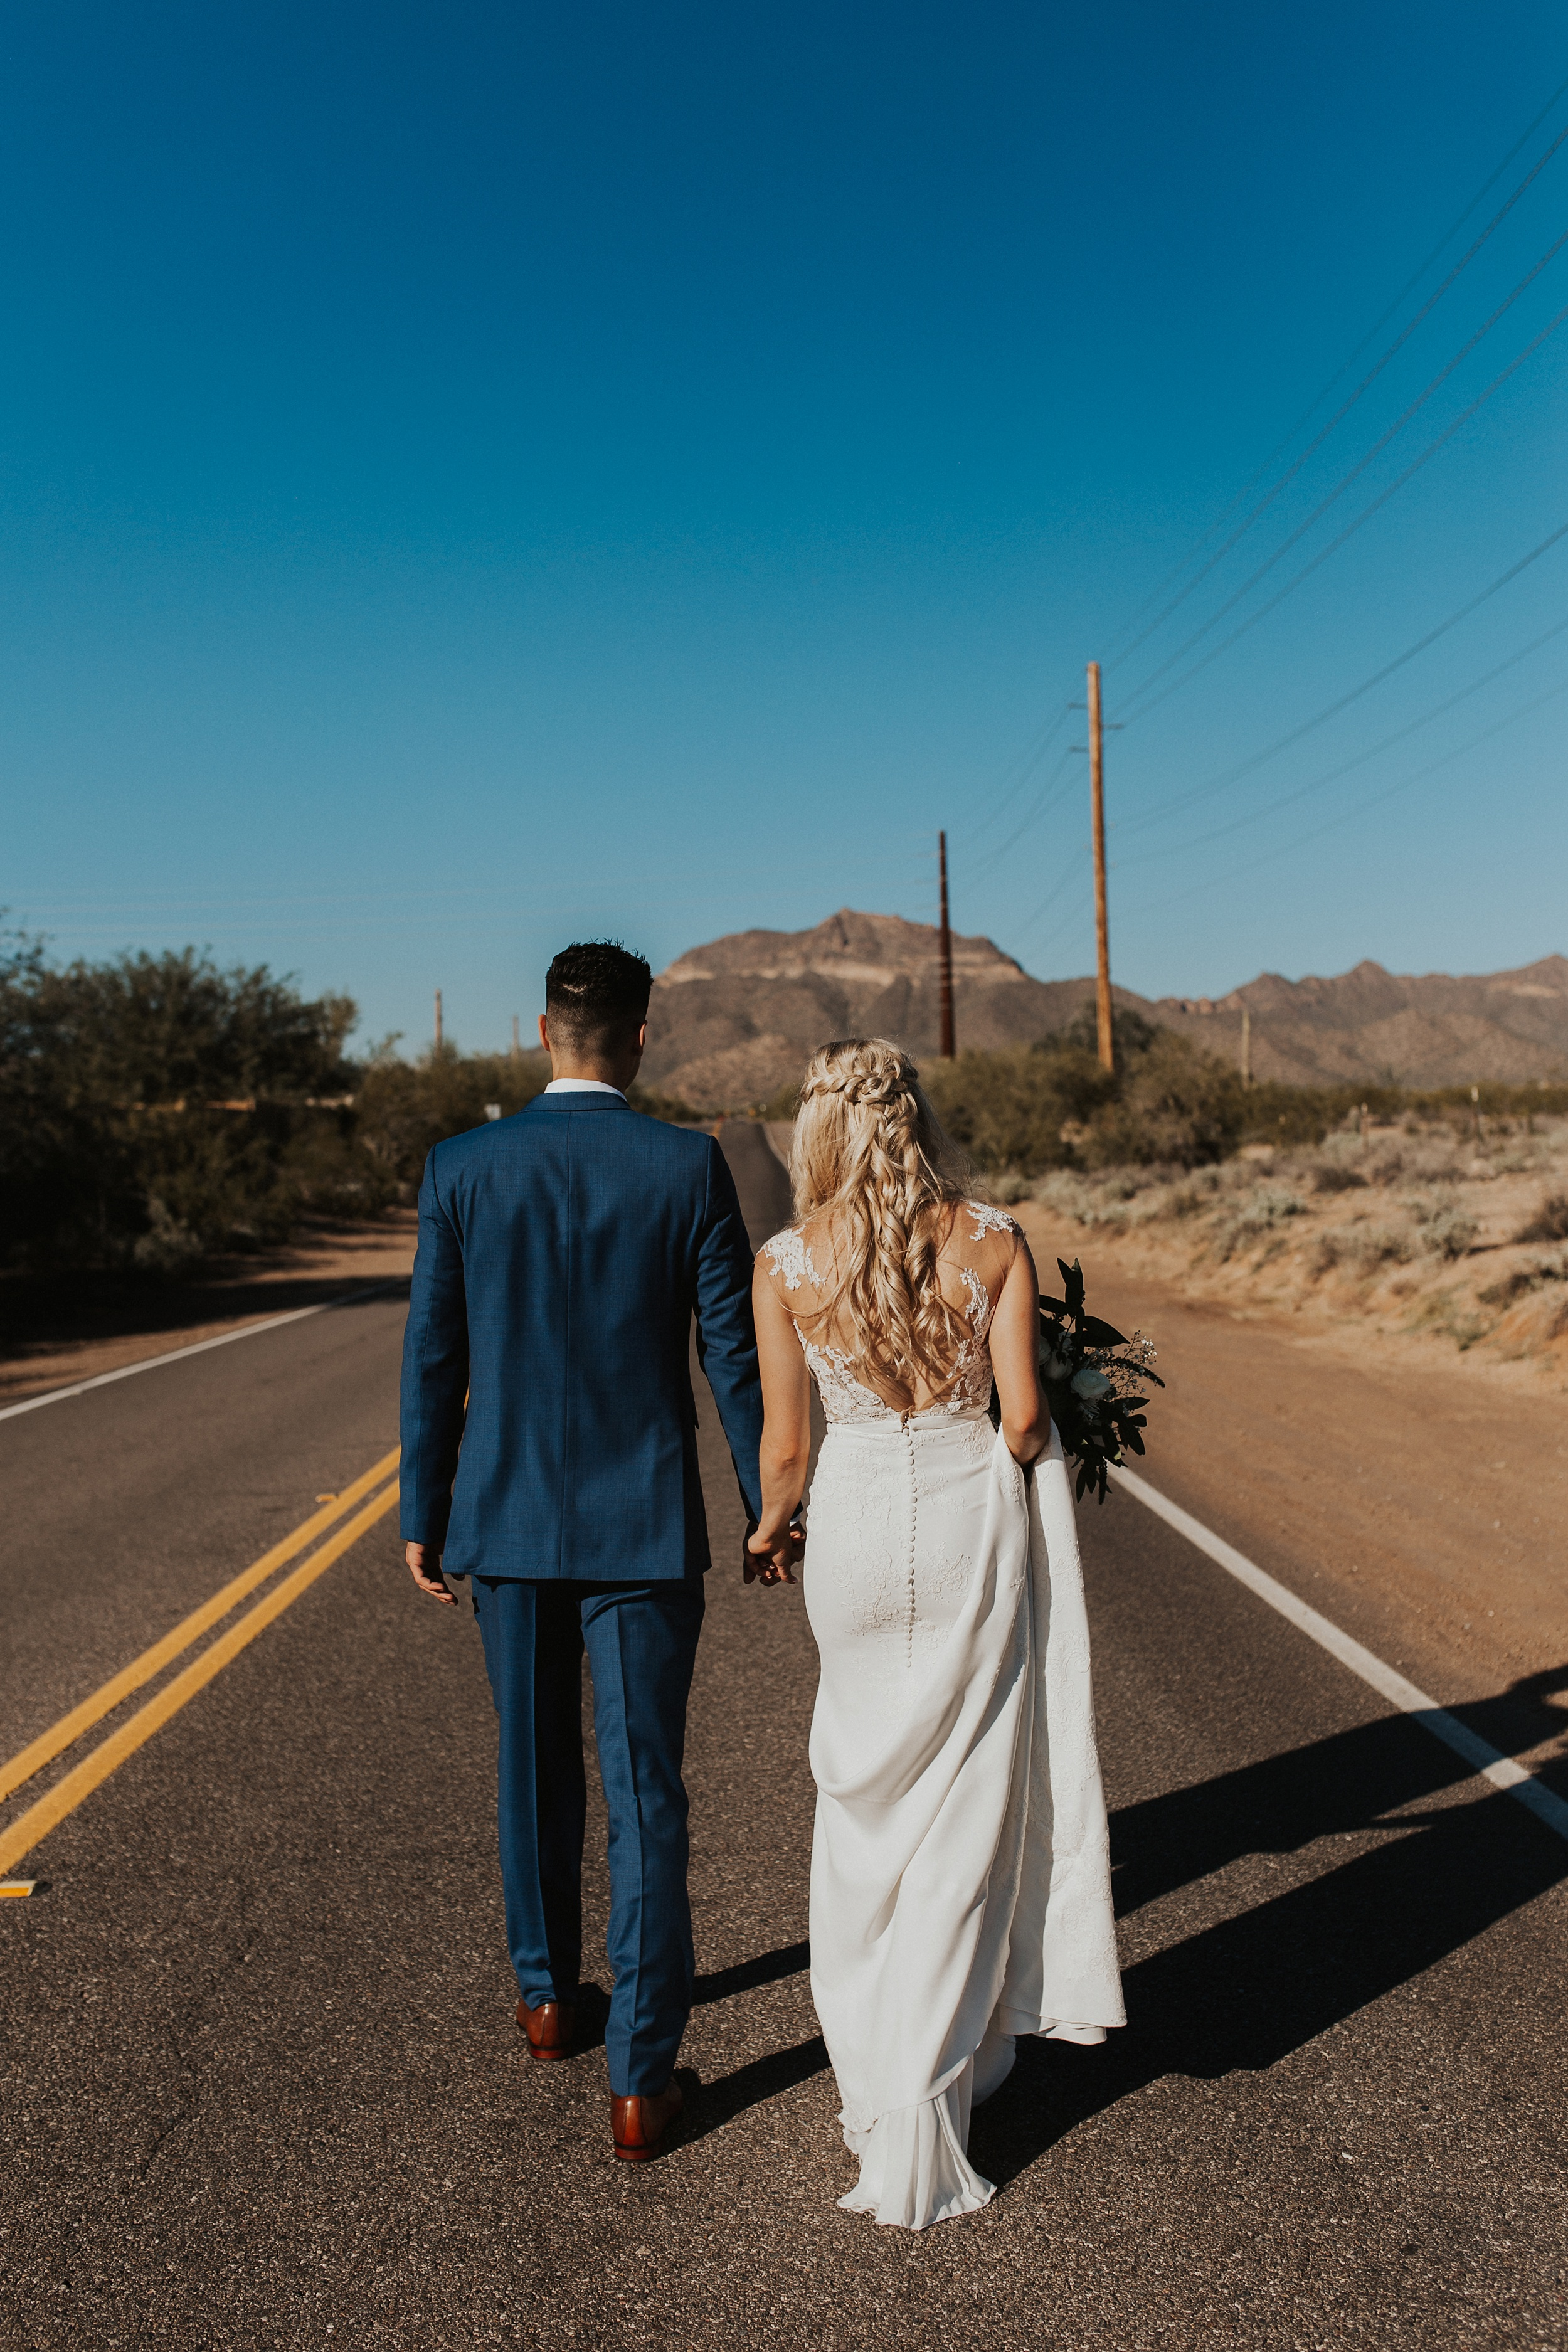 Meg+Bubba_Wedding_Bride+Groom_Portraits_Arizona-19.jpg